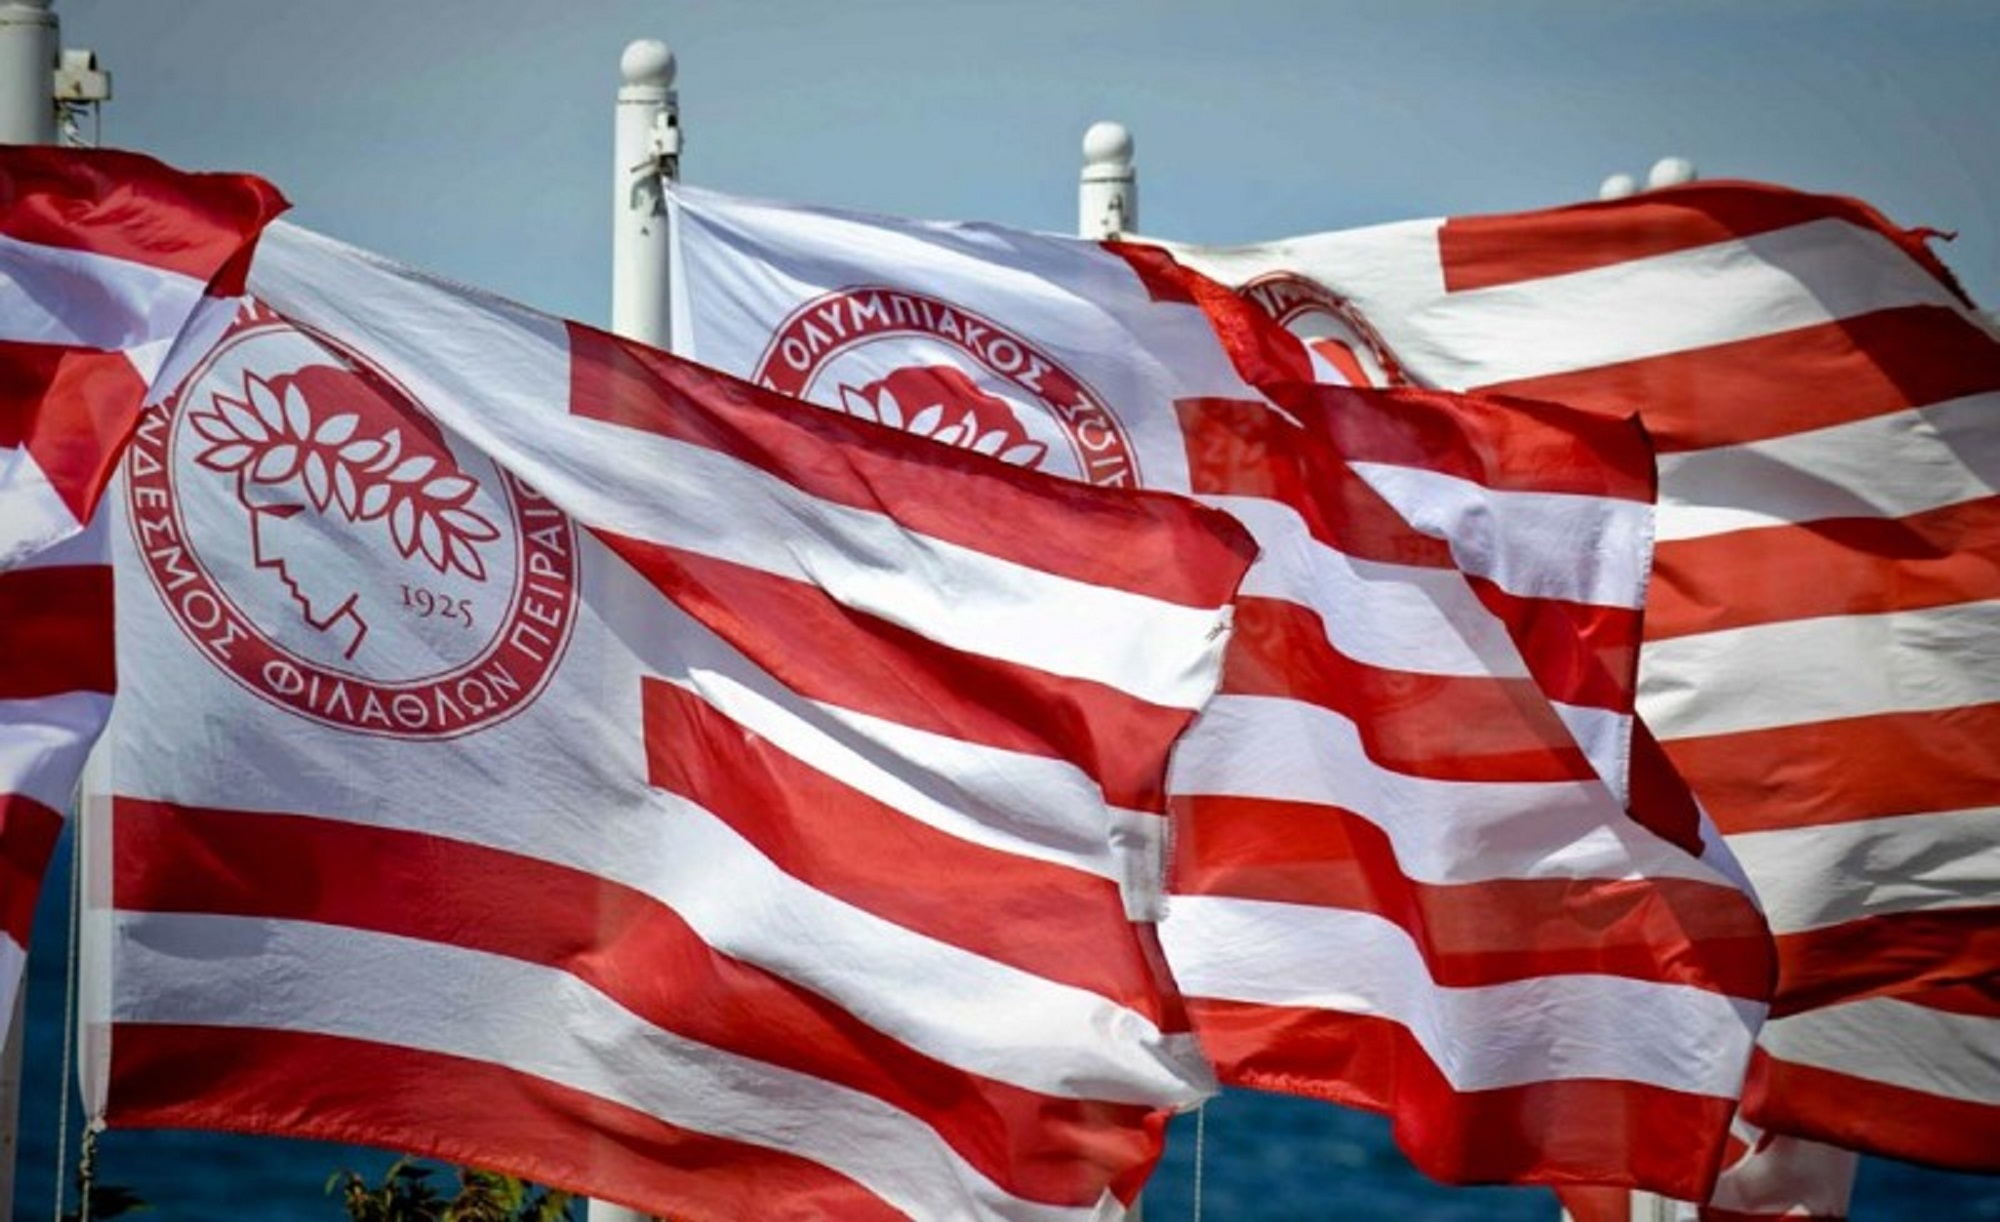 pae_olympiacos